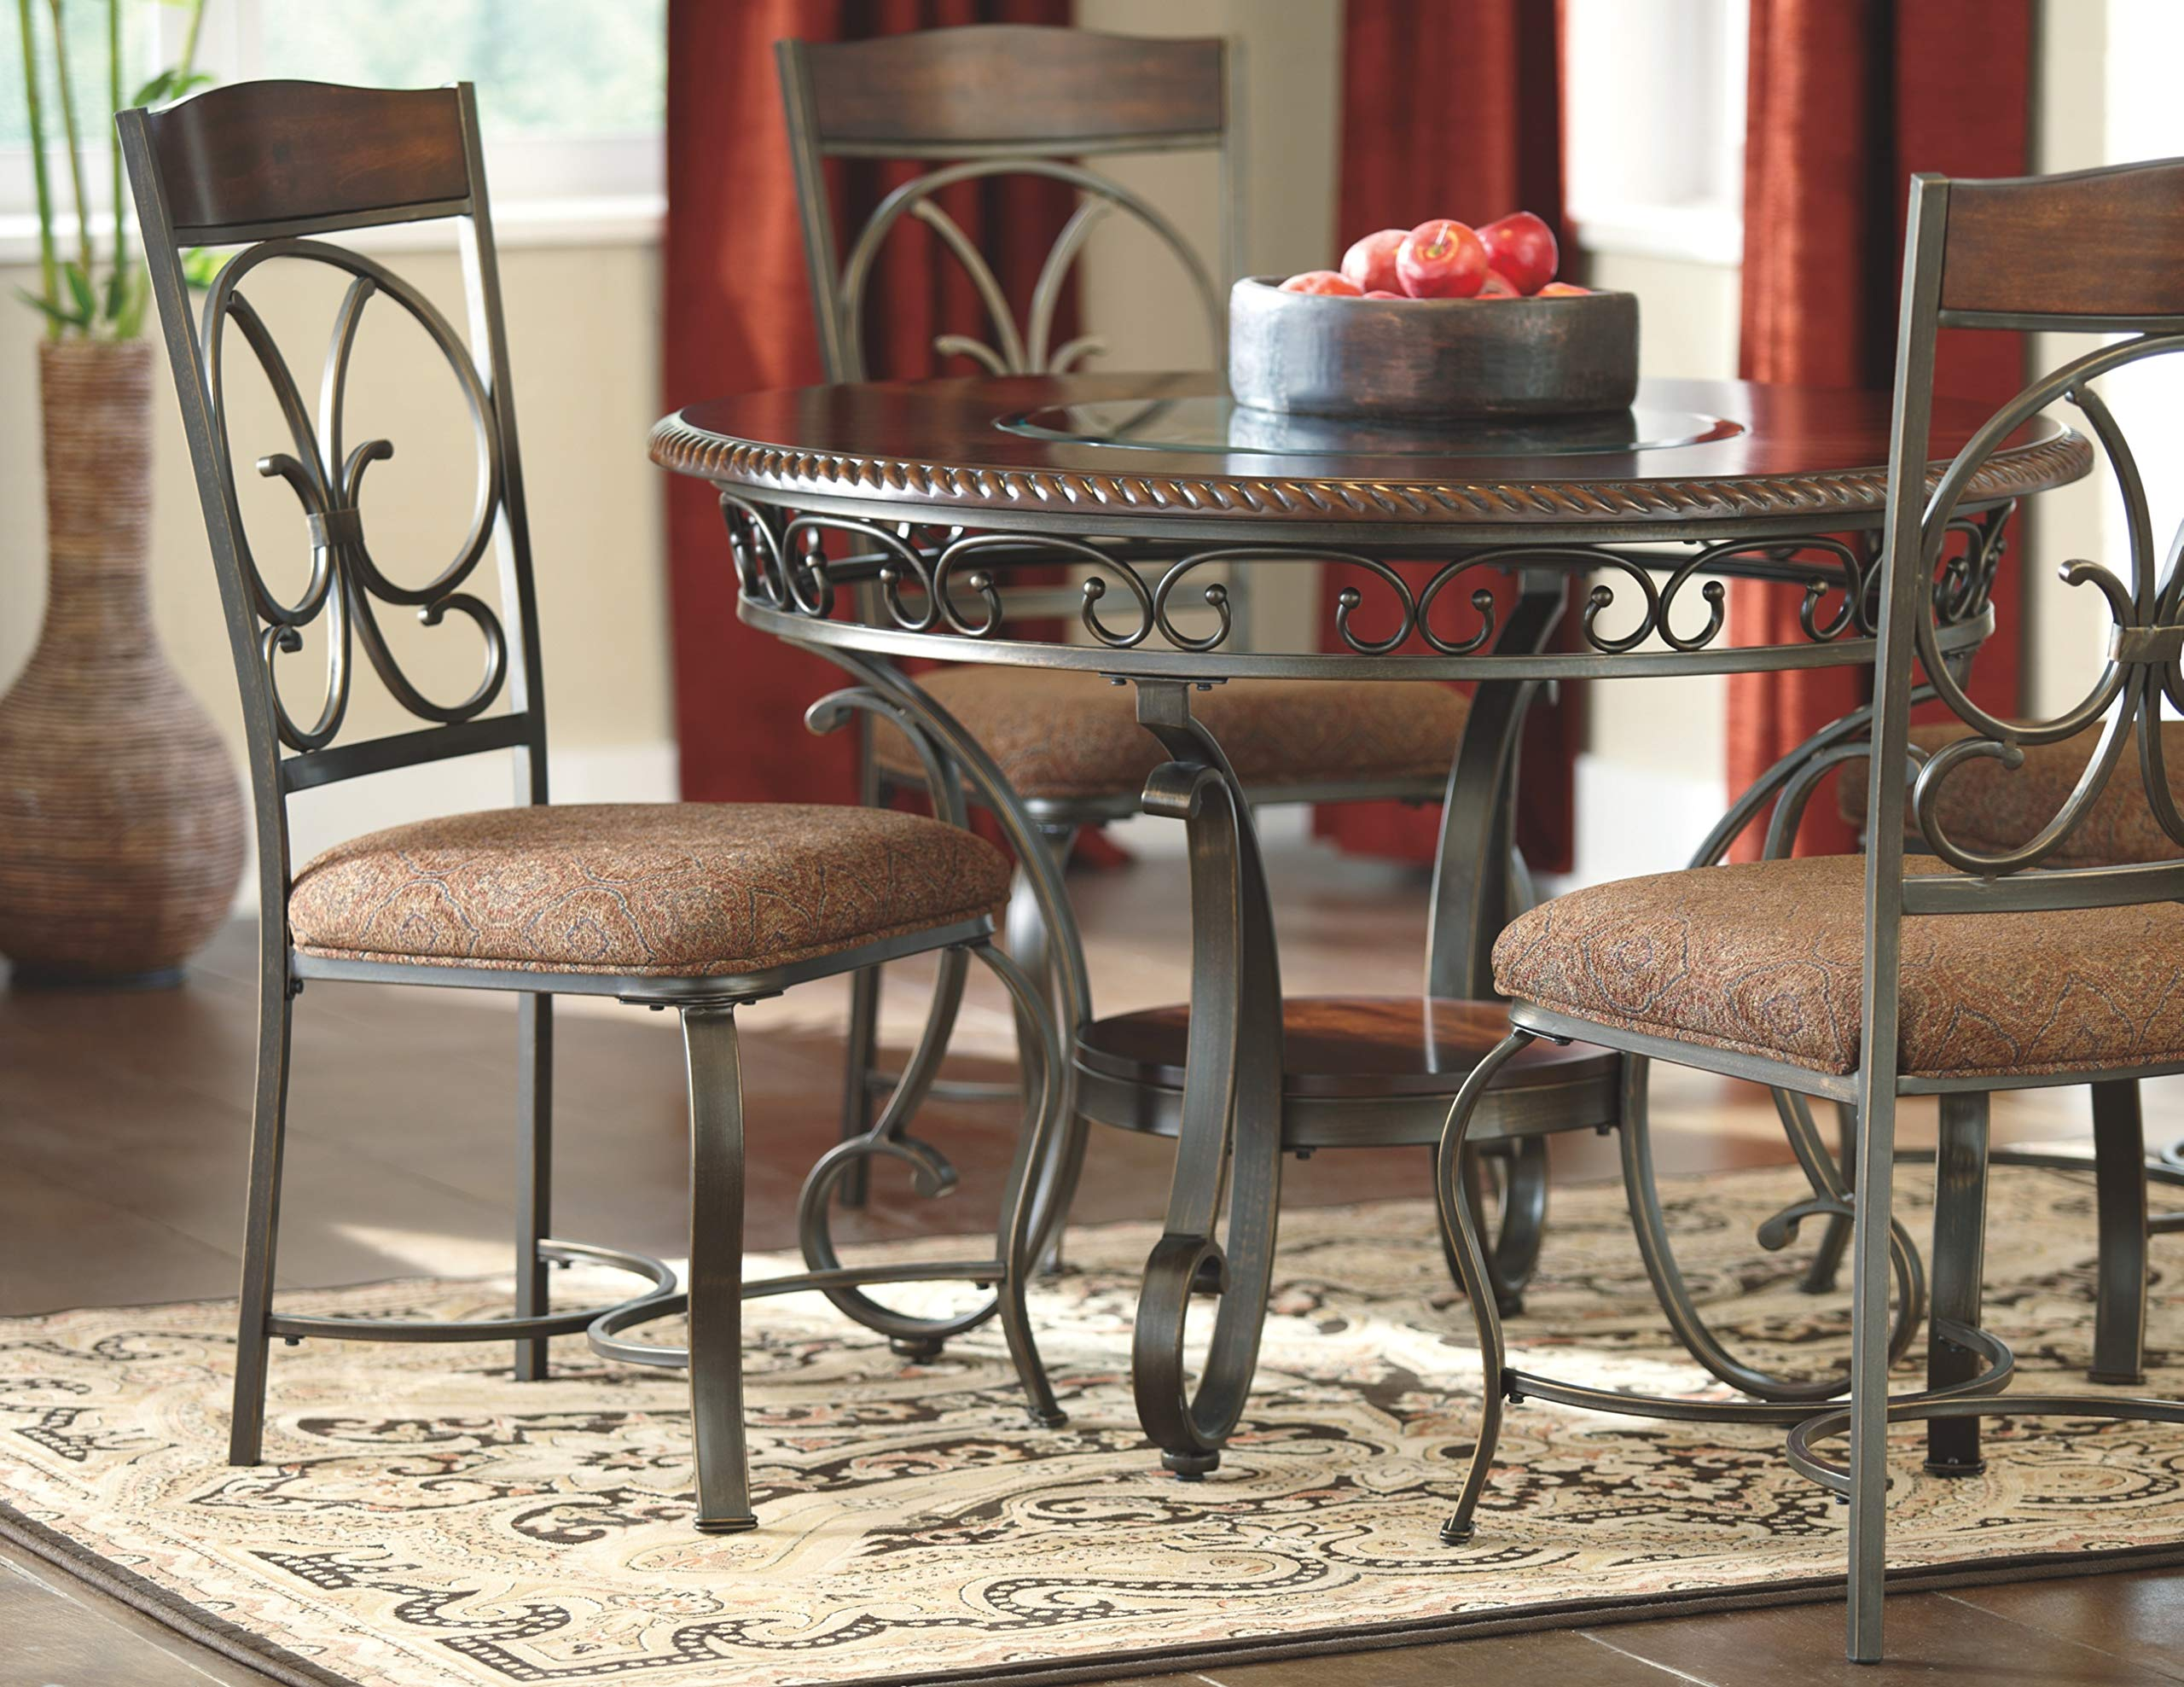 Ashley Furniture Signature Design - Glambrey Dining Room Table - Round - Brown by Signature Design by Ashley (Image #5)